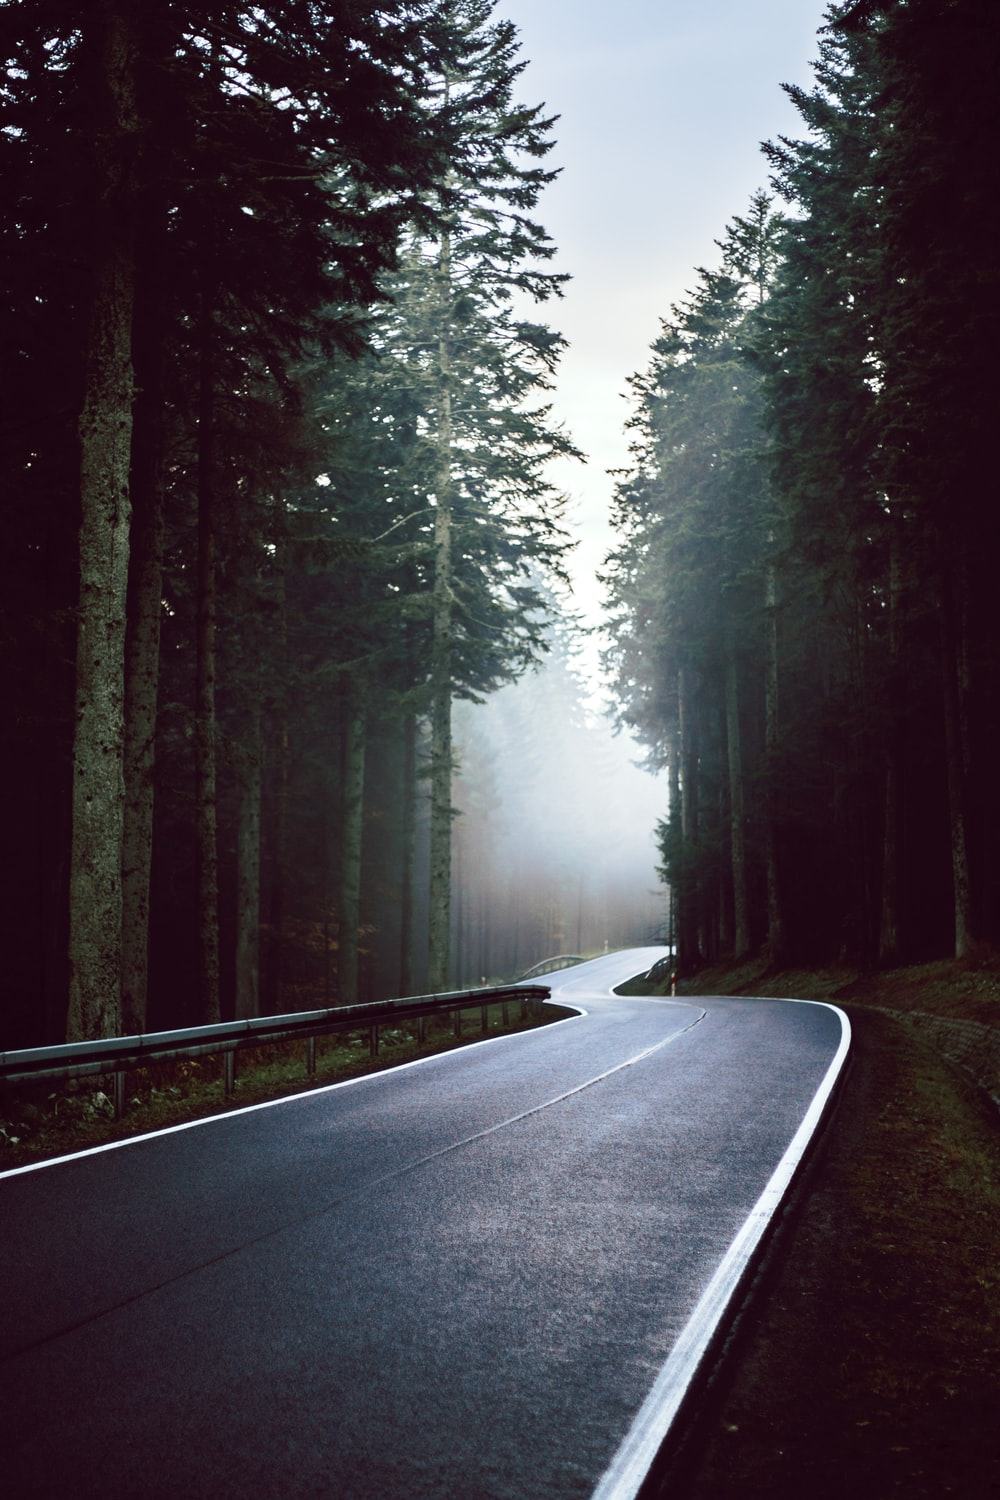 grey concrete road surrounded with tall trees